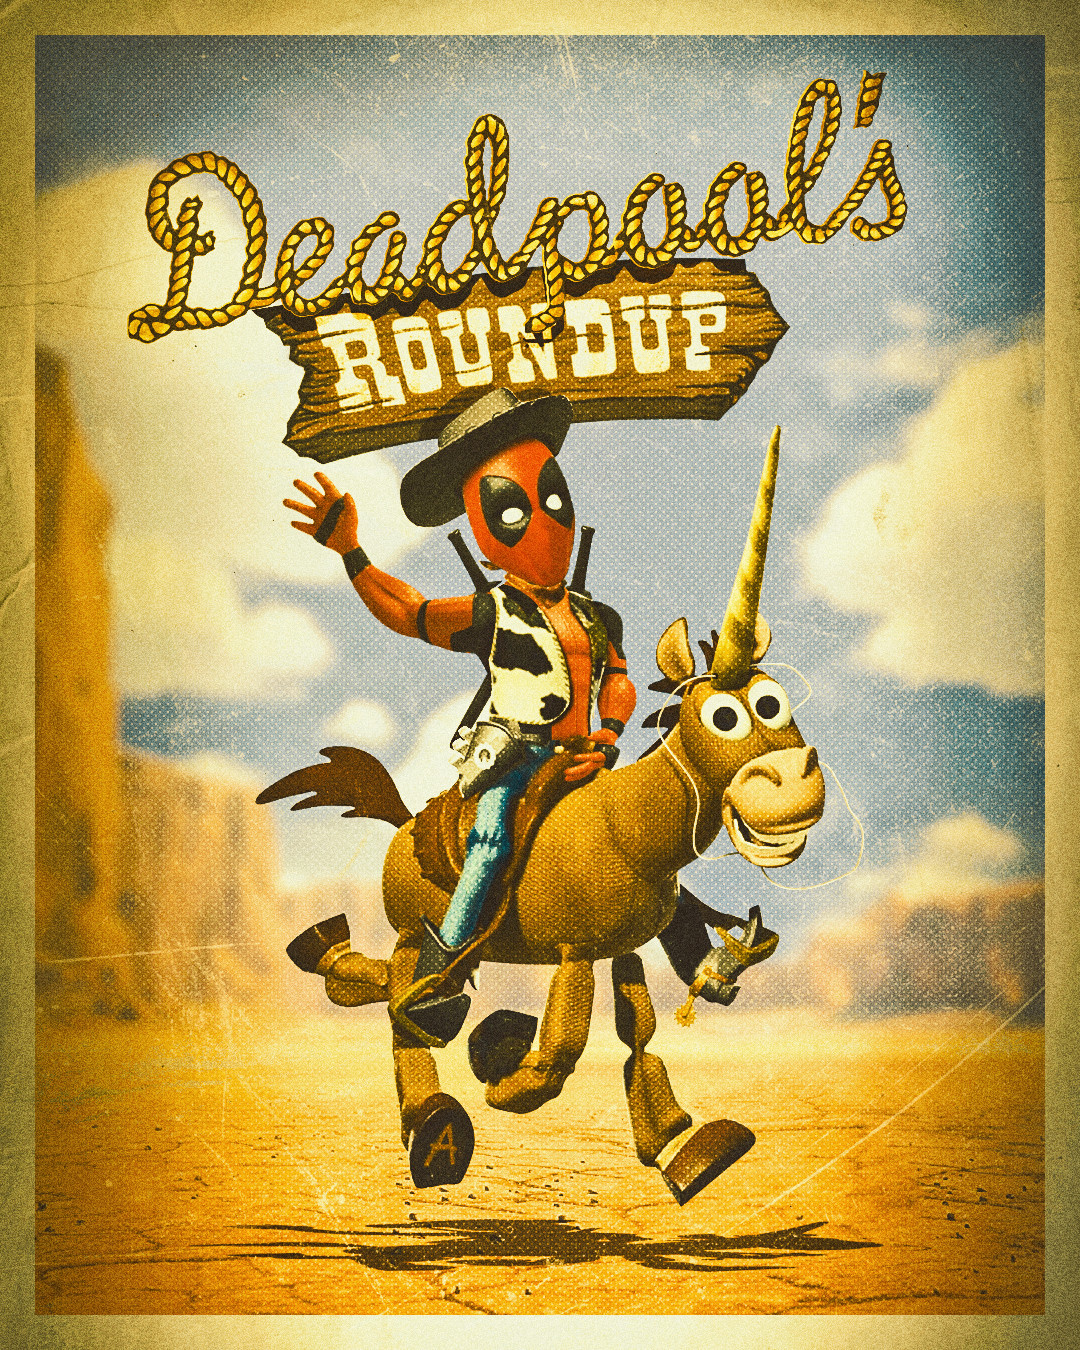 Deadpool's Roundup